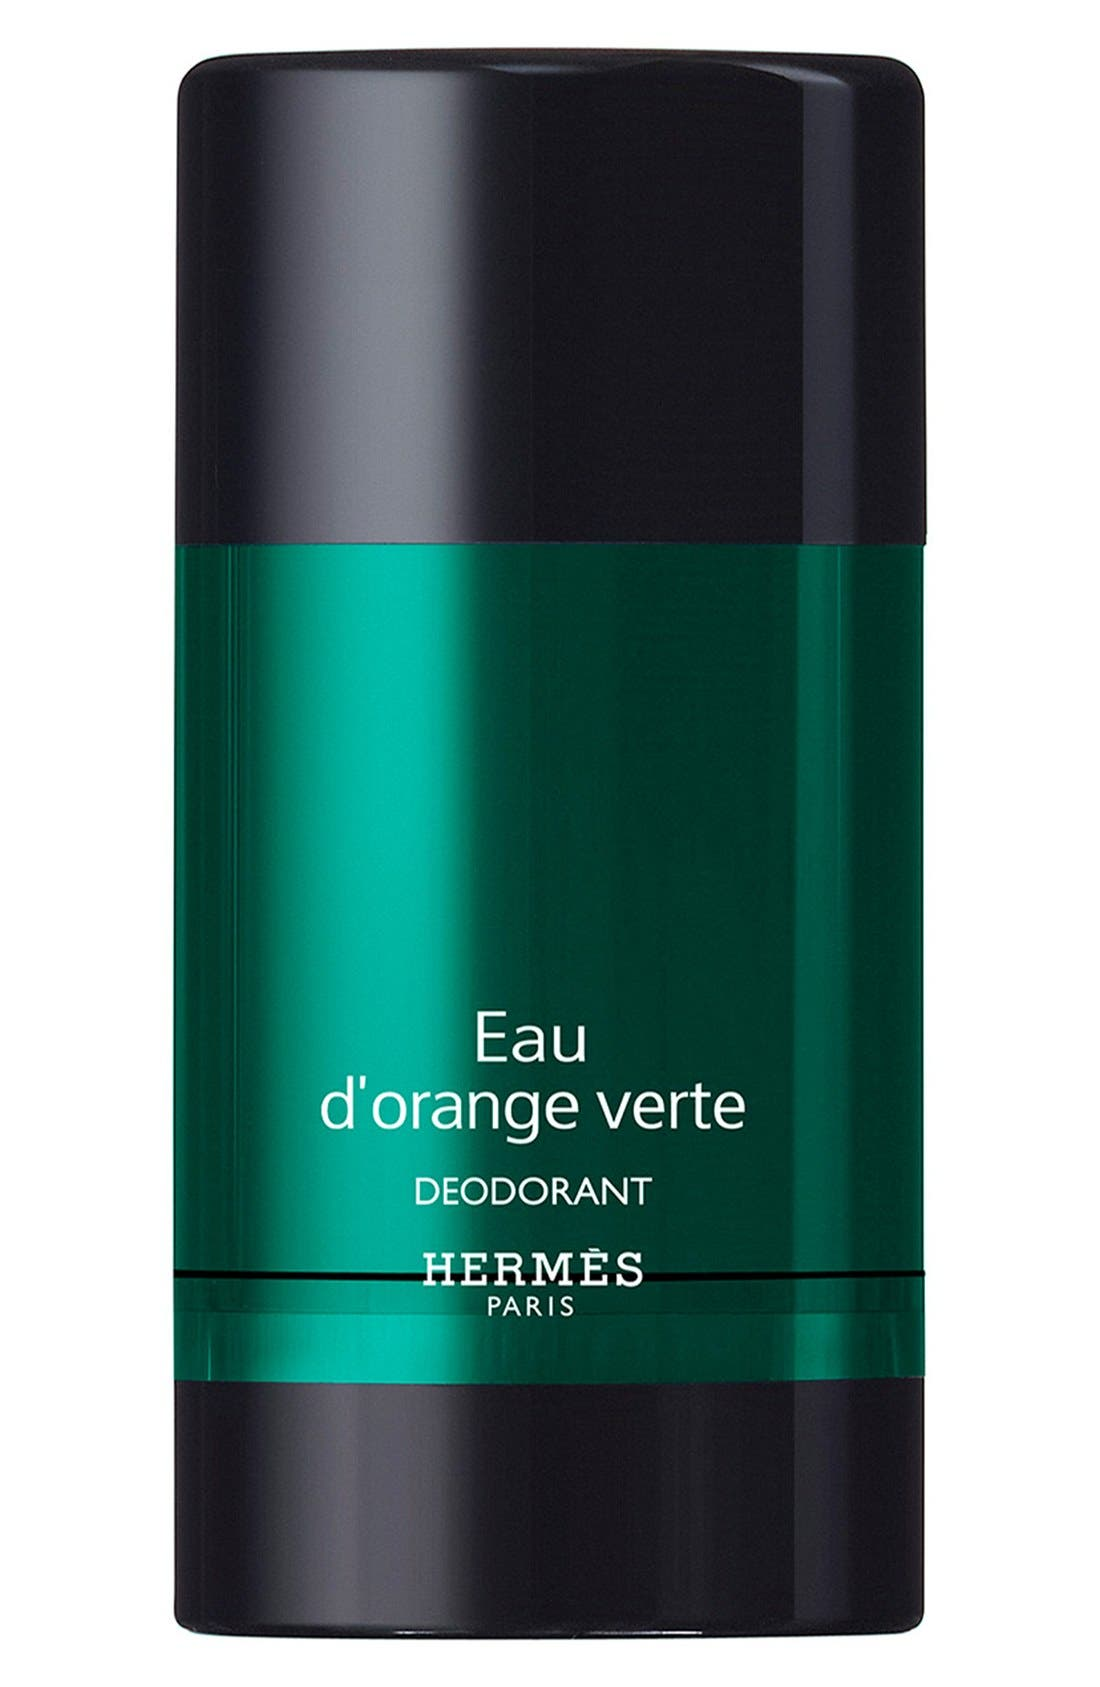 Hermès Eau d'orange verte - Alcohol-free deodorant stick